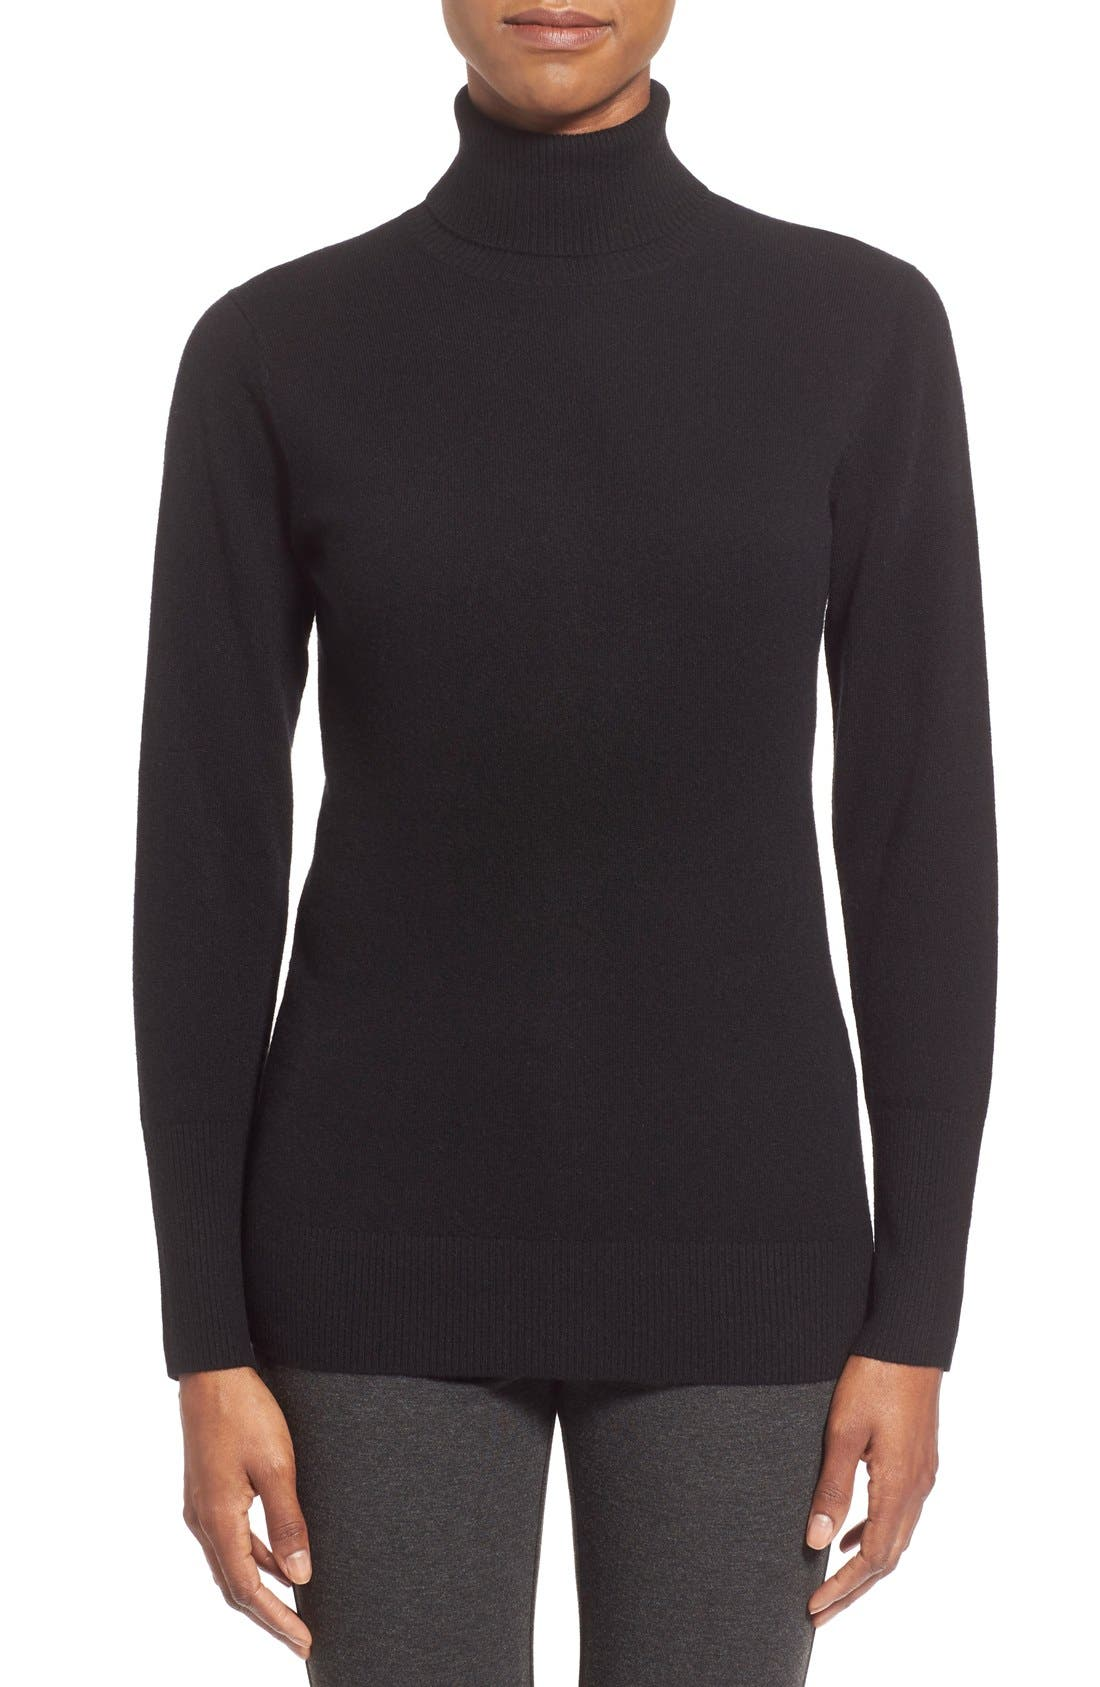 NORDSTROM COLLECTION Cashmere Turtleneck Sweater, Main, color, 001